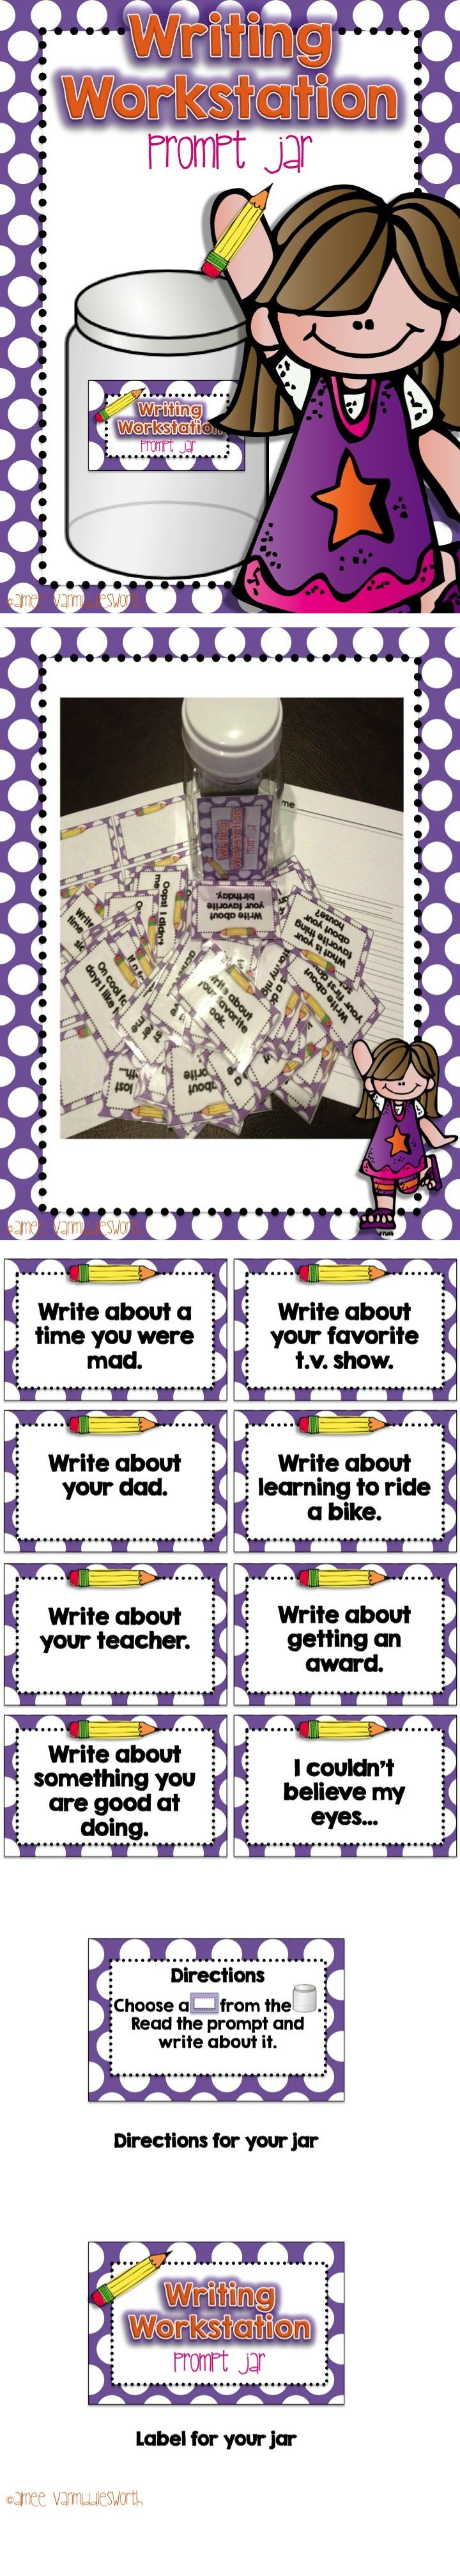 Writing Prompt Jar full of prompts for your writing workstation or an early finishers activity!